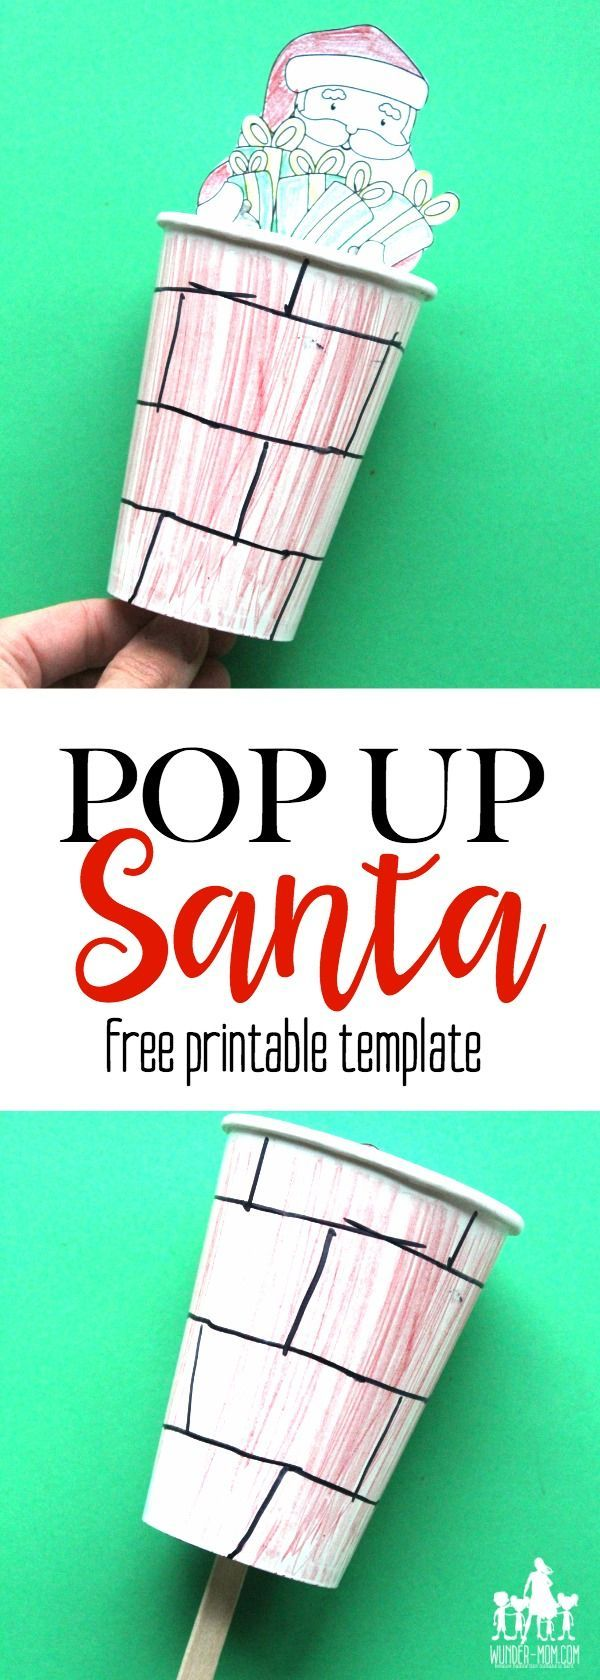 pop up santa craft for kids!  They will love this christmas craft that's perfect for parties or the preschool classroom - download the free template and watch santa pop up the chimney #christmas #christmascrafts #christmascraftsforkids #santa #SantaClaus #santacrafts #holidaycraft #freeprintable #printable